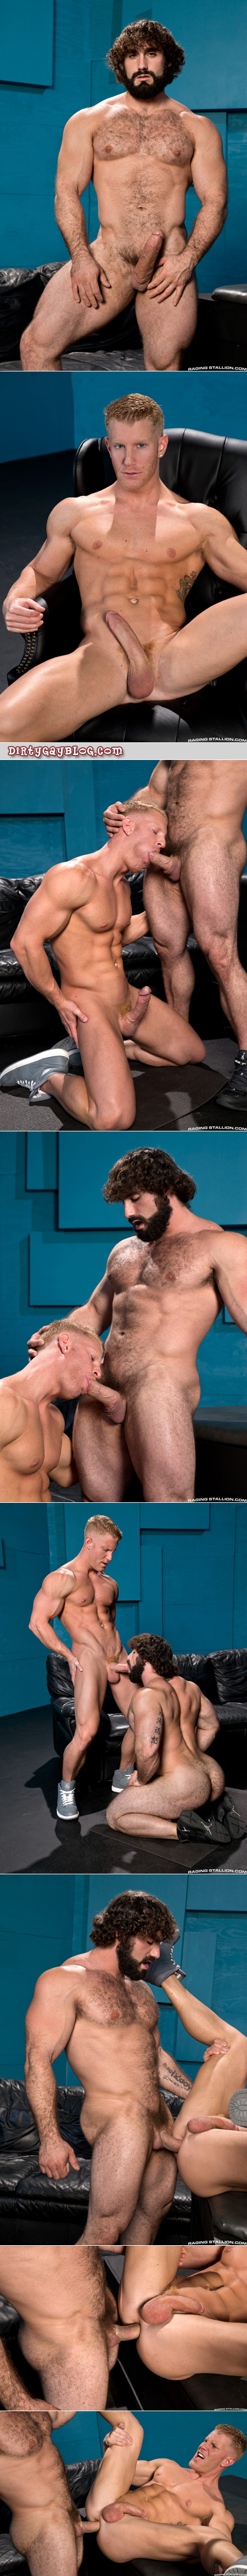 Hairy Greek muscle god fucking a smooth blonde muscular pig.